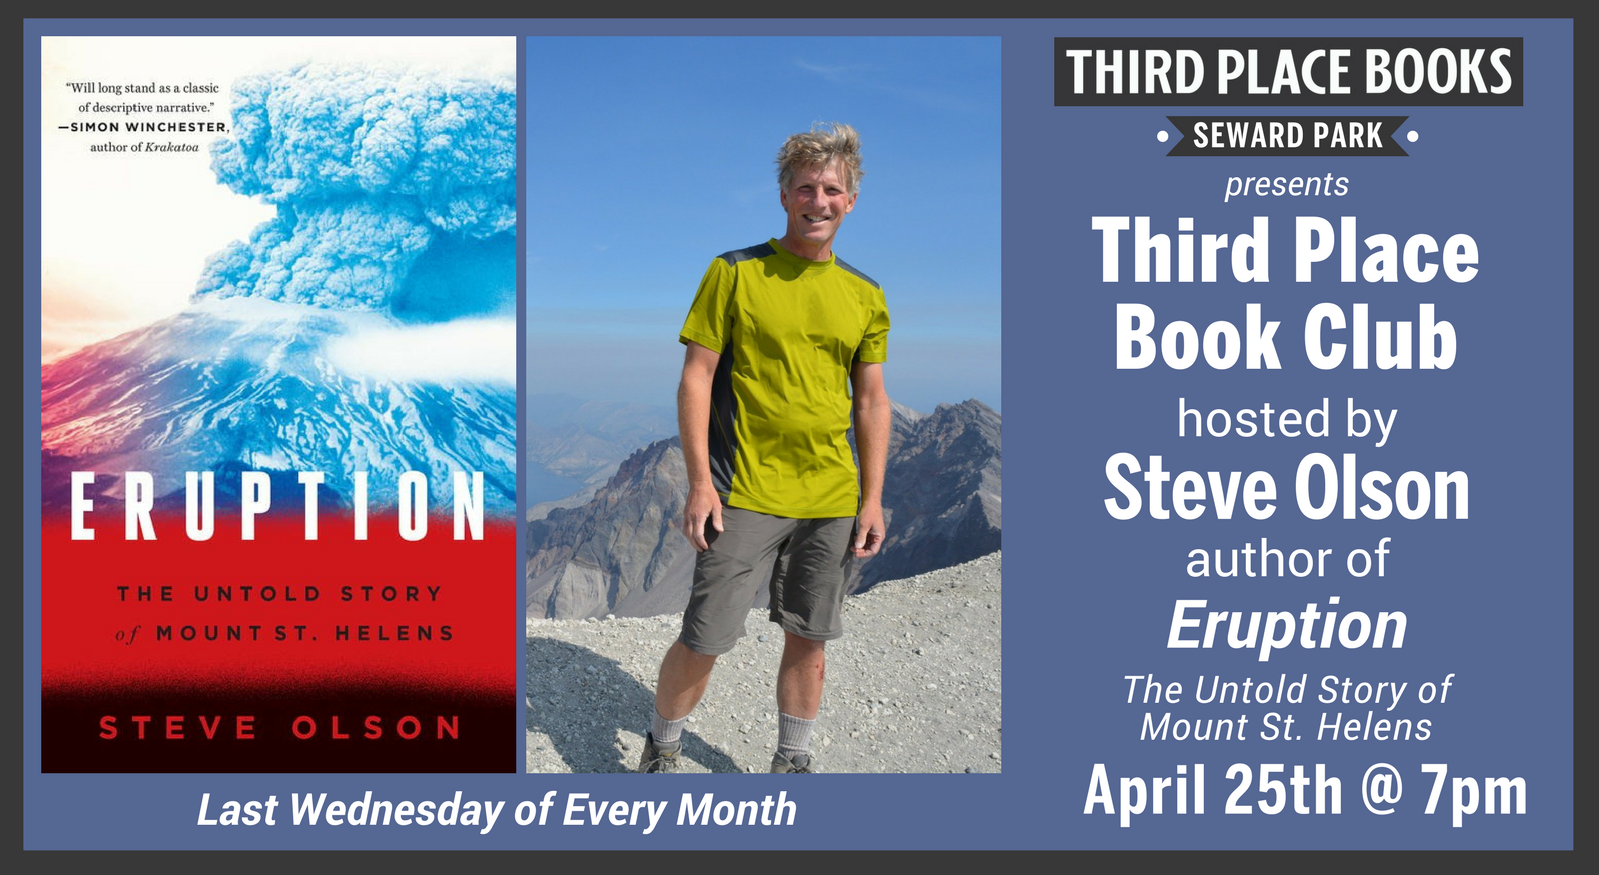 Third Place Book Club with Steve Olson reading Eruption on Wednesday, April 25th at 7pm